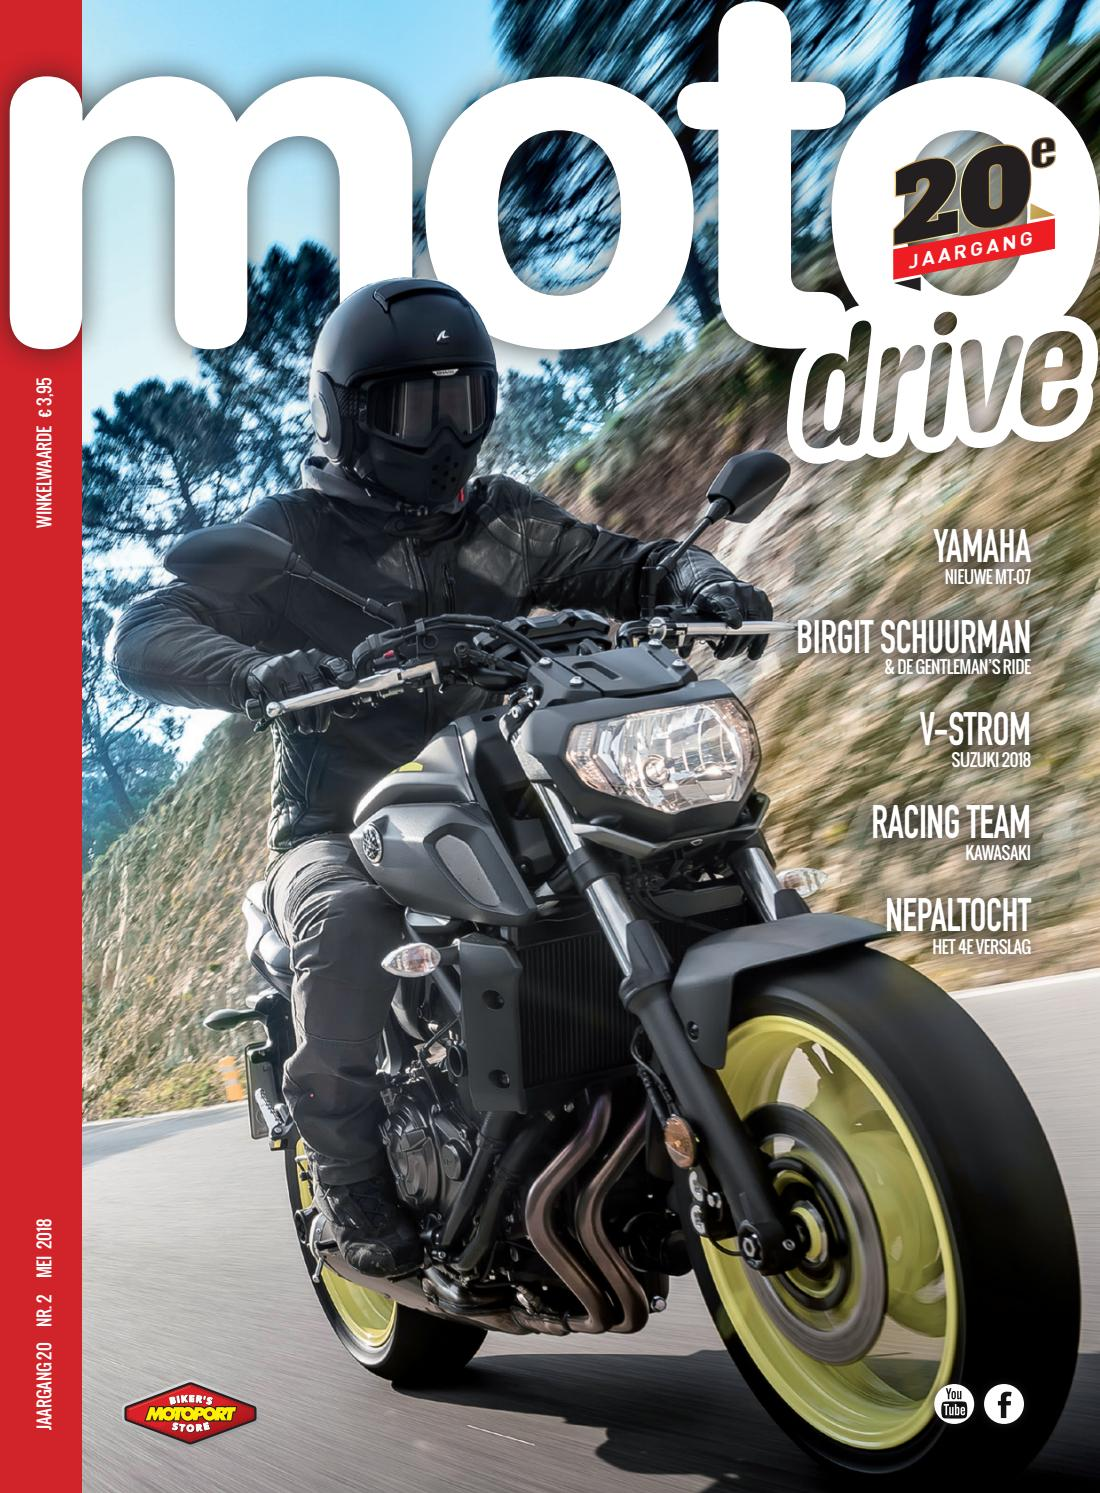 Br Hesje Reflecterend Met Led Verlichting Geel Motodrive2 2018 Issuu By Xtra Digital Agency Issuu